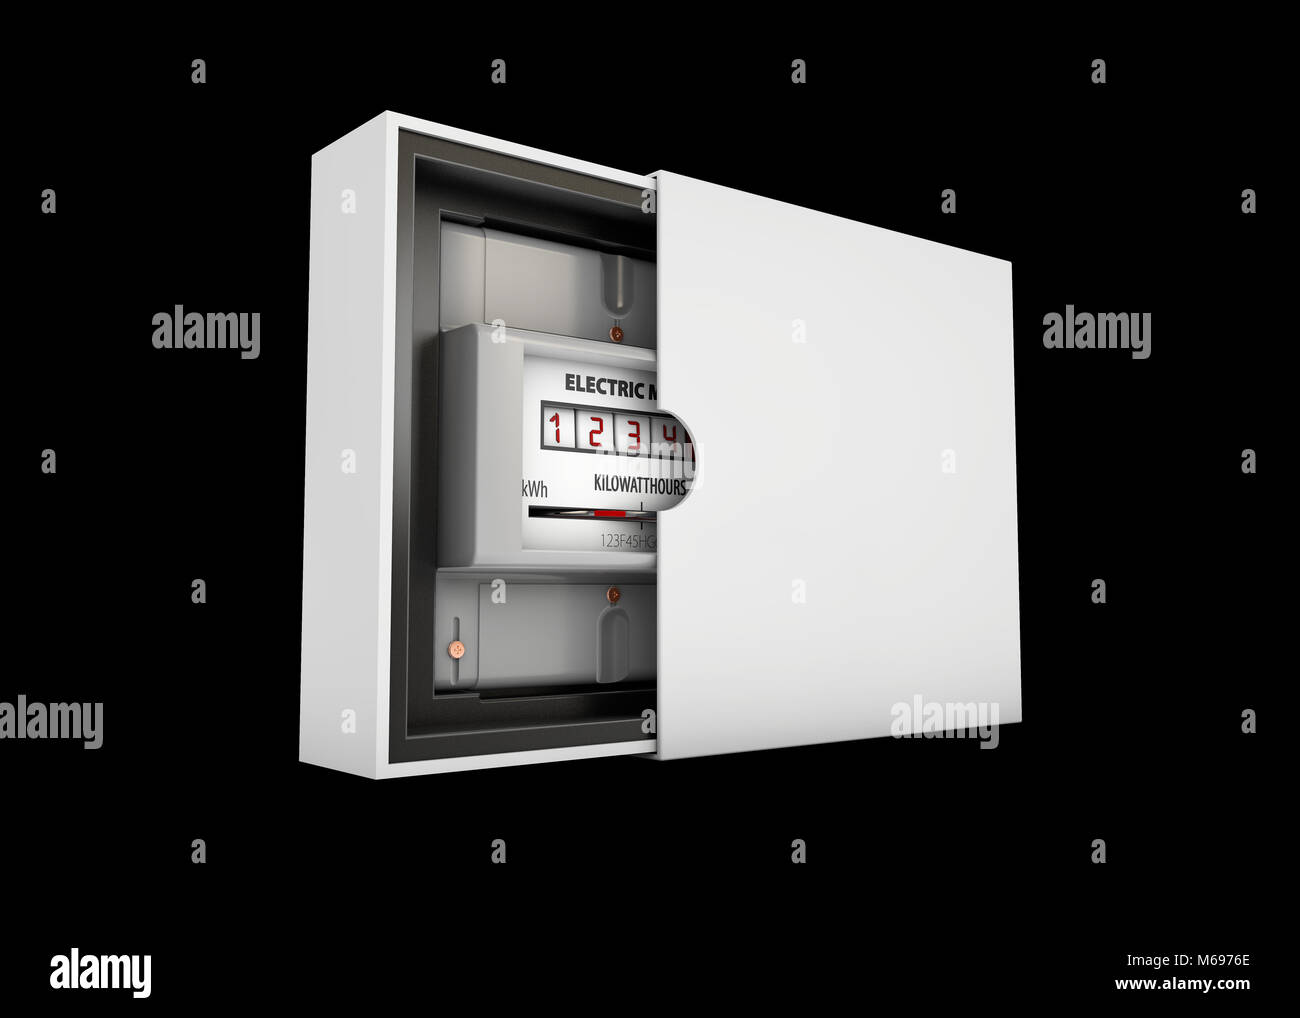 3d Illustration of electric meter in the box, isolated on black background. - Stock Image